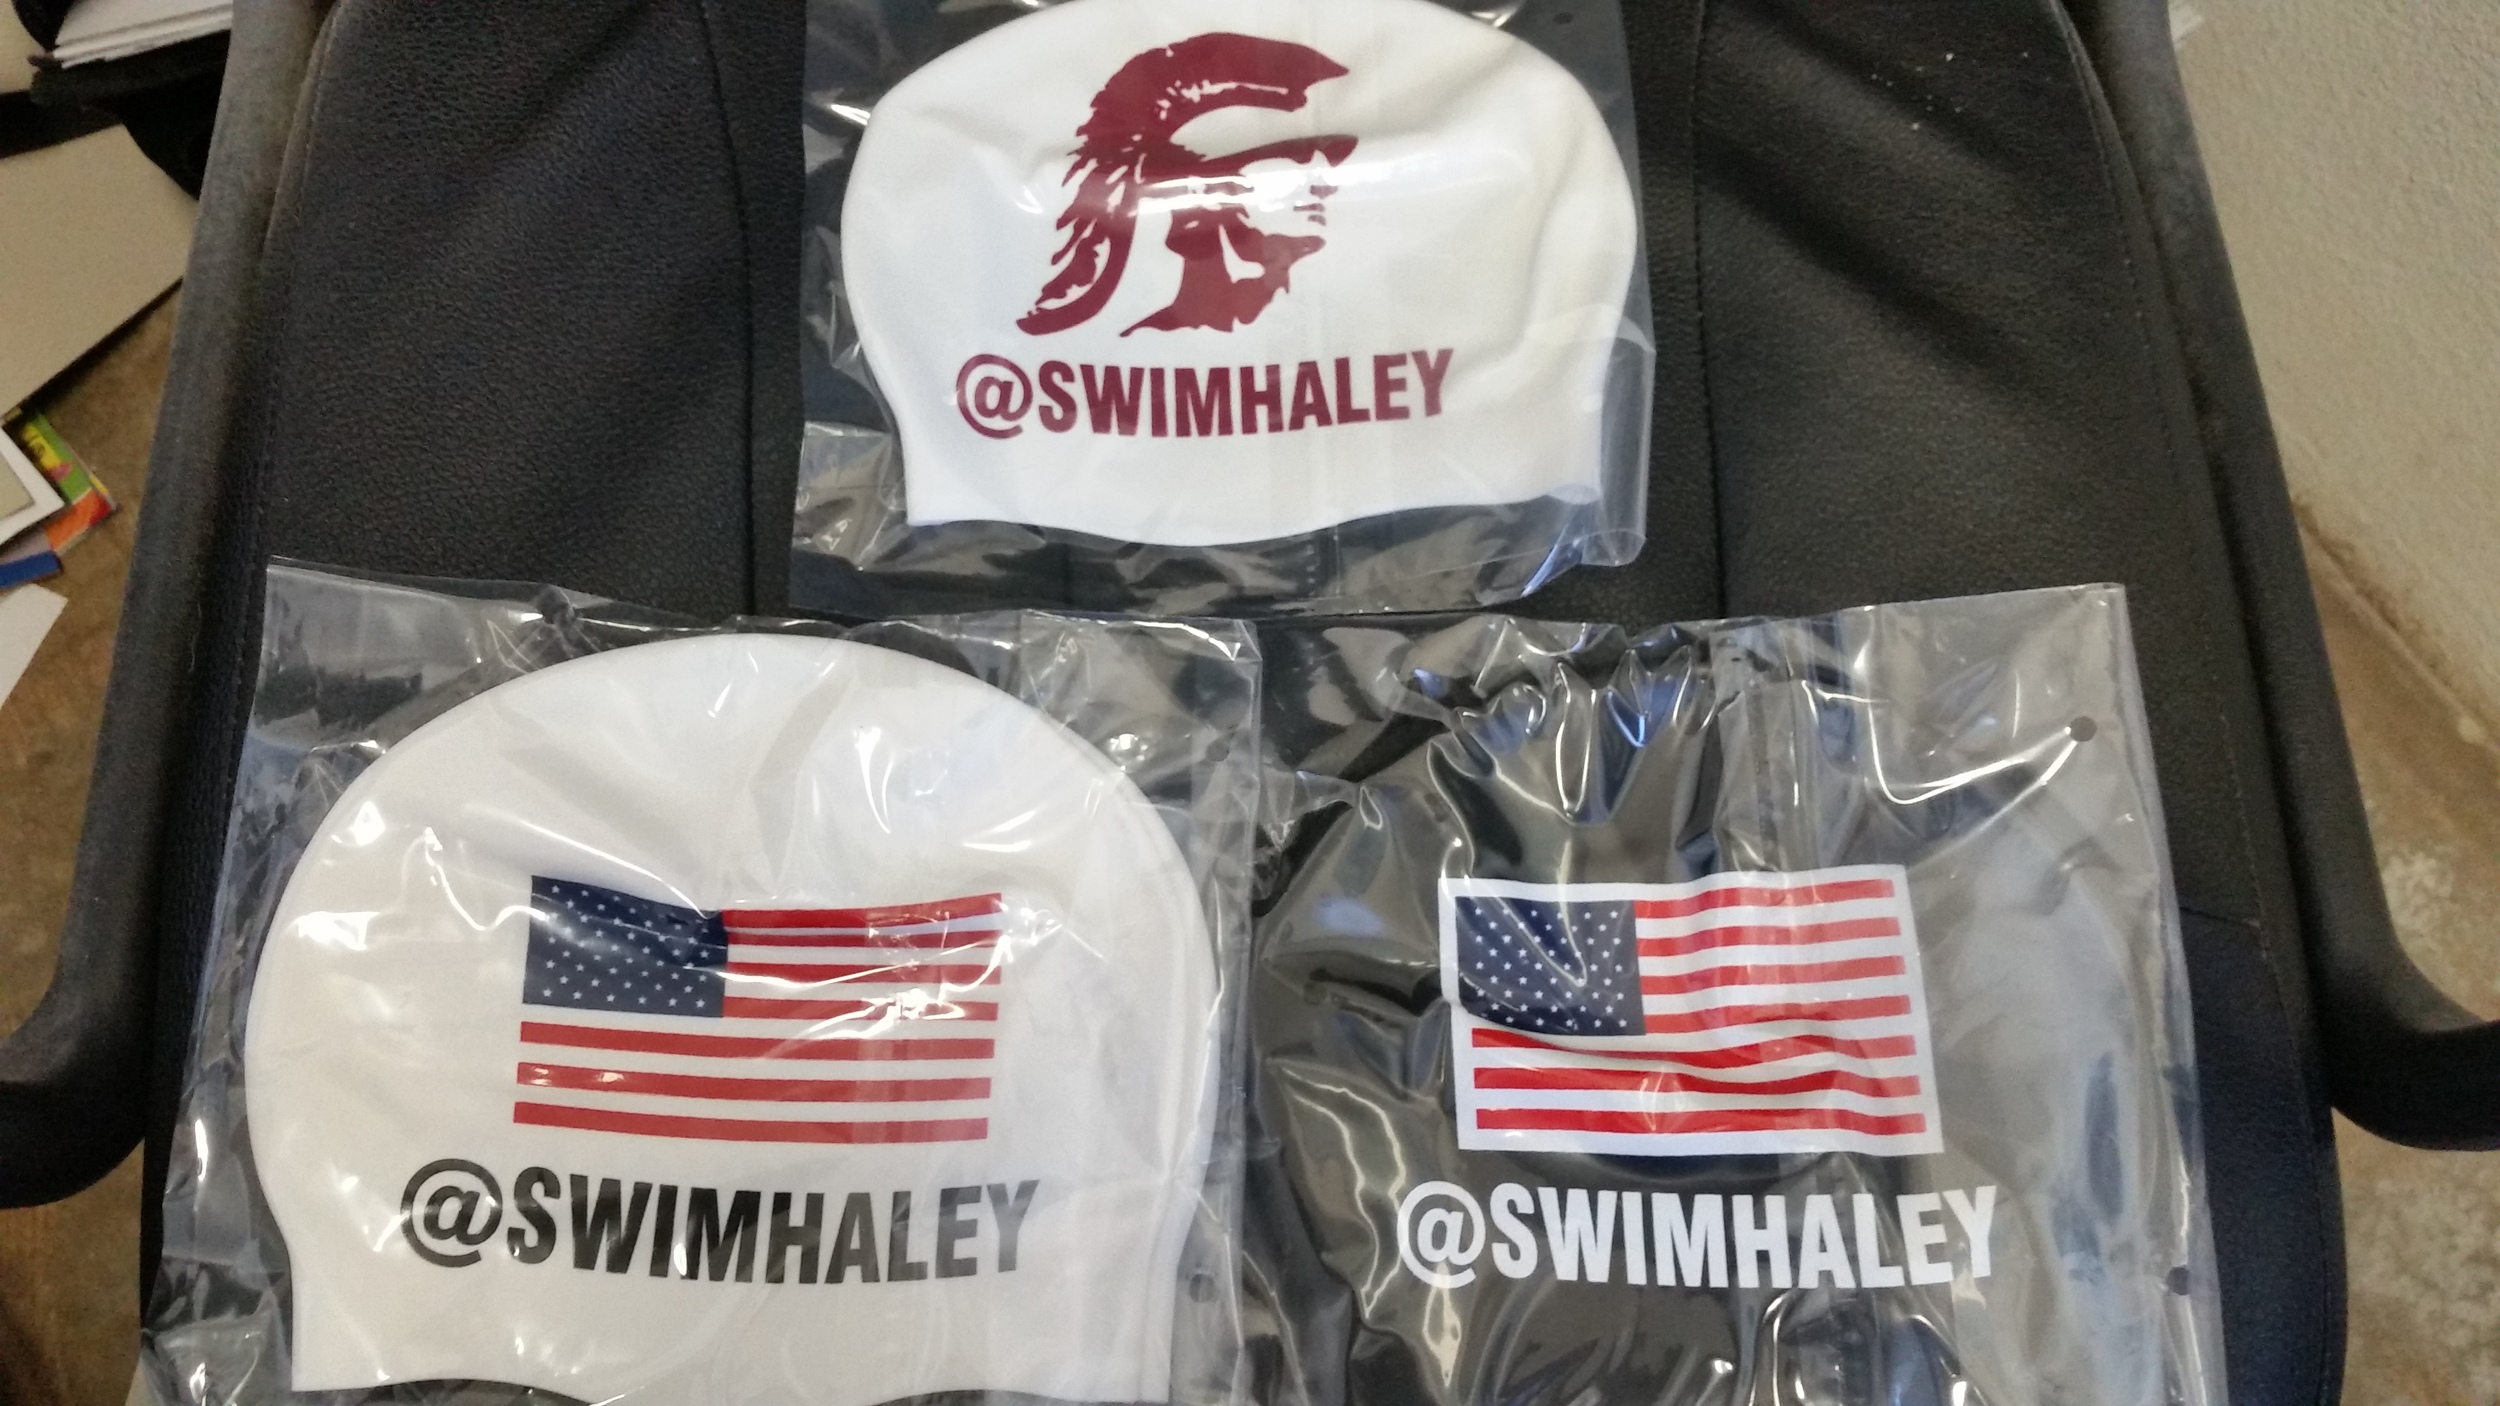 With permission from USA Swimming, she was able to make the change from last name to twitter name on her caps for the 2014 U.S. Nationals.  USA Swimming the following year offered American swimmers the opportunity to do the same at their Duel in the Pool event in November 2015.